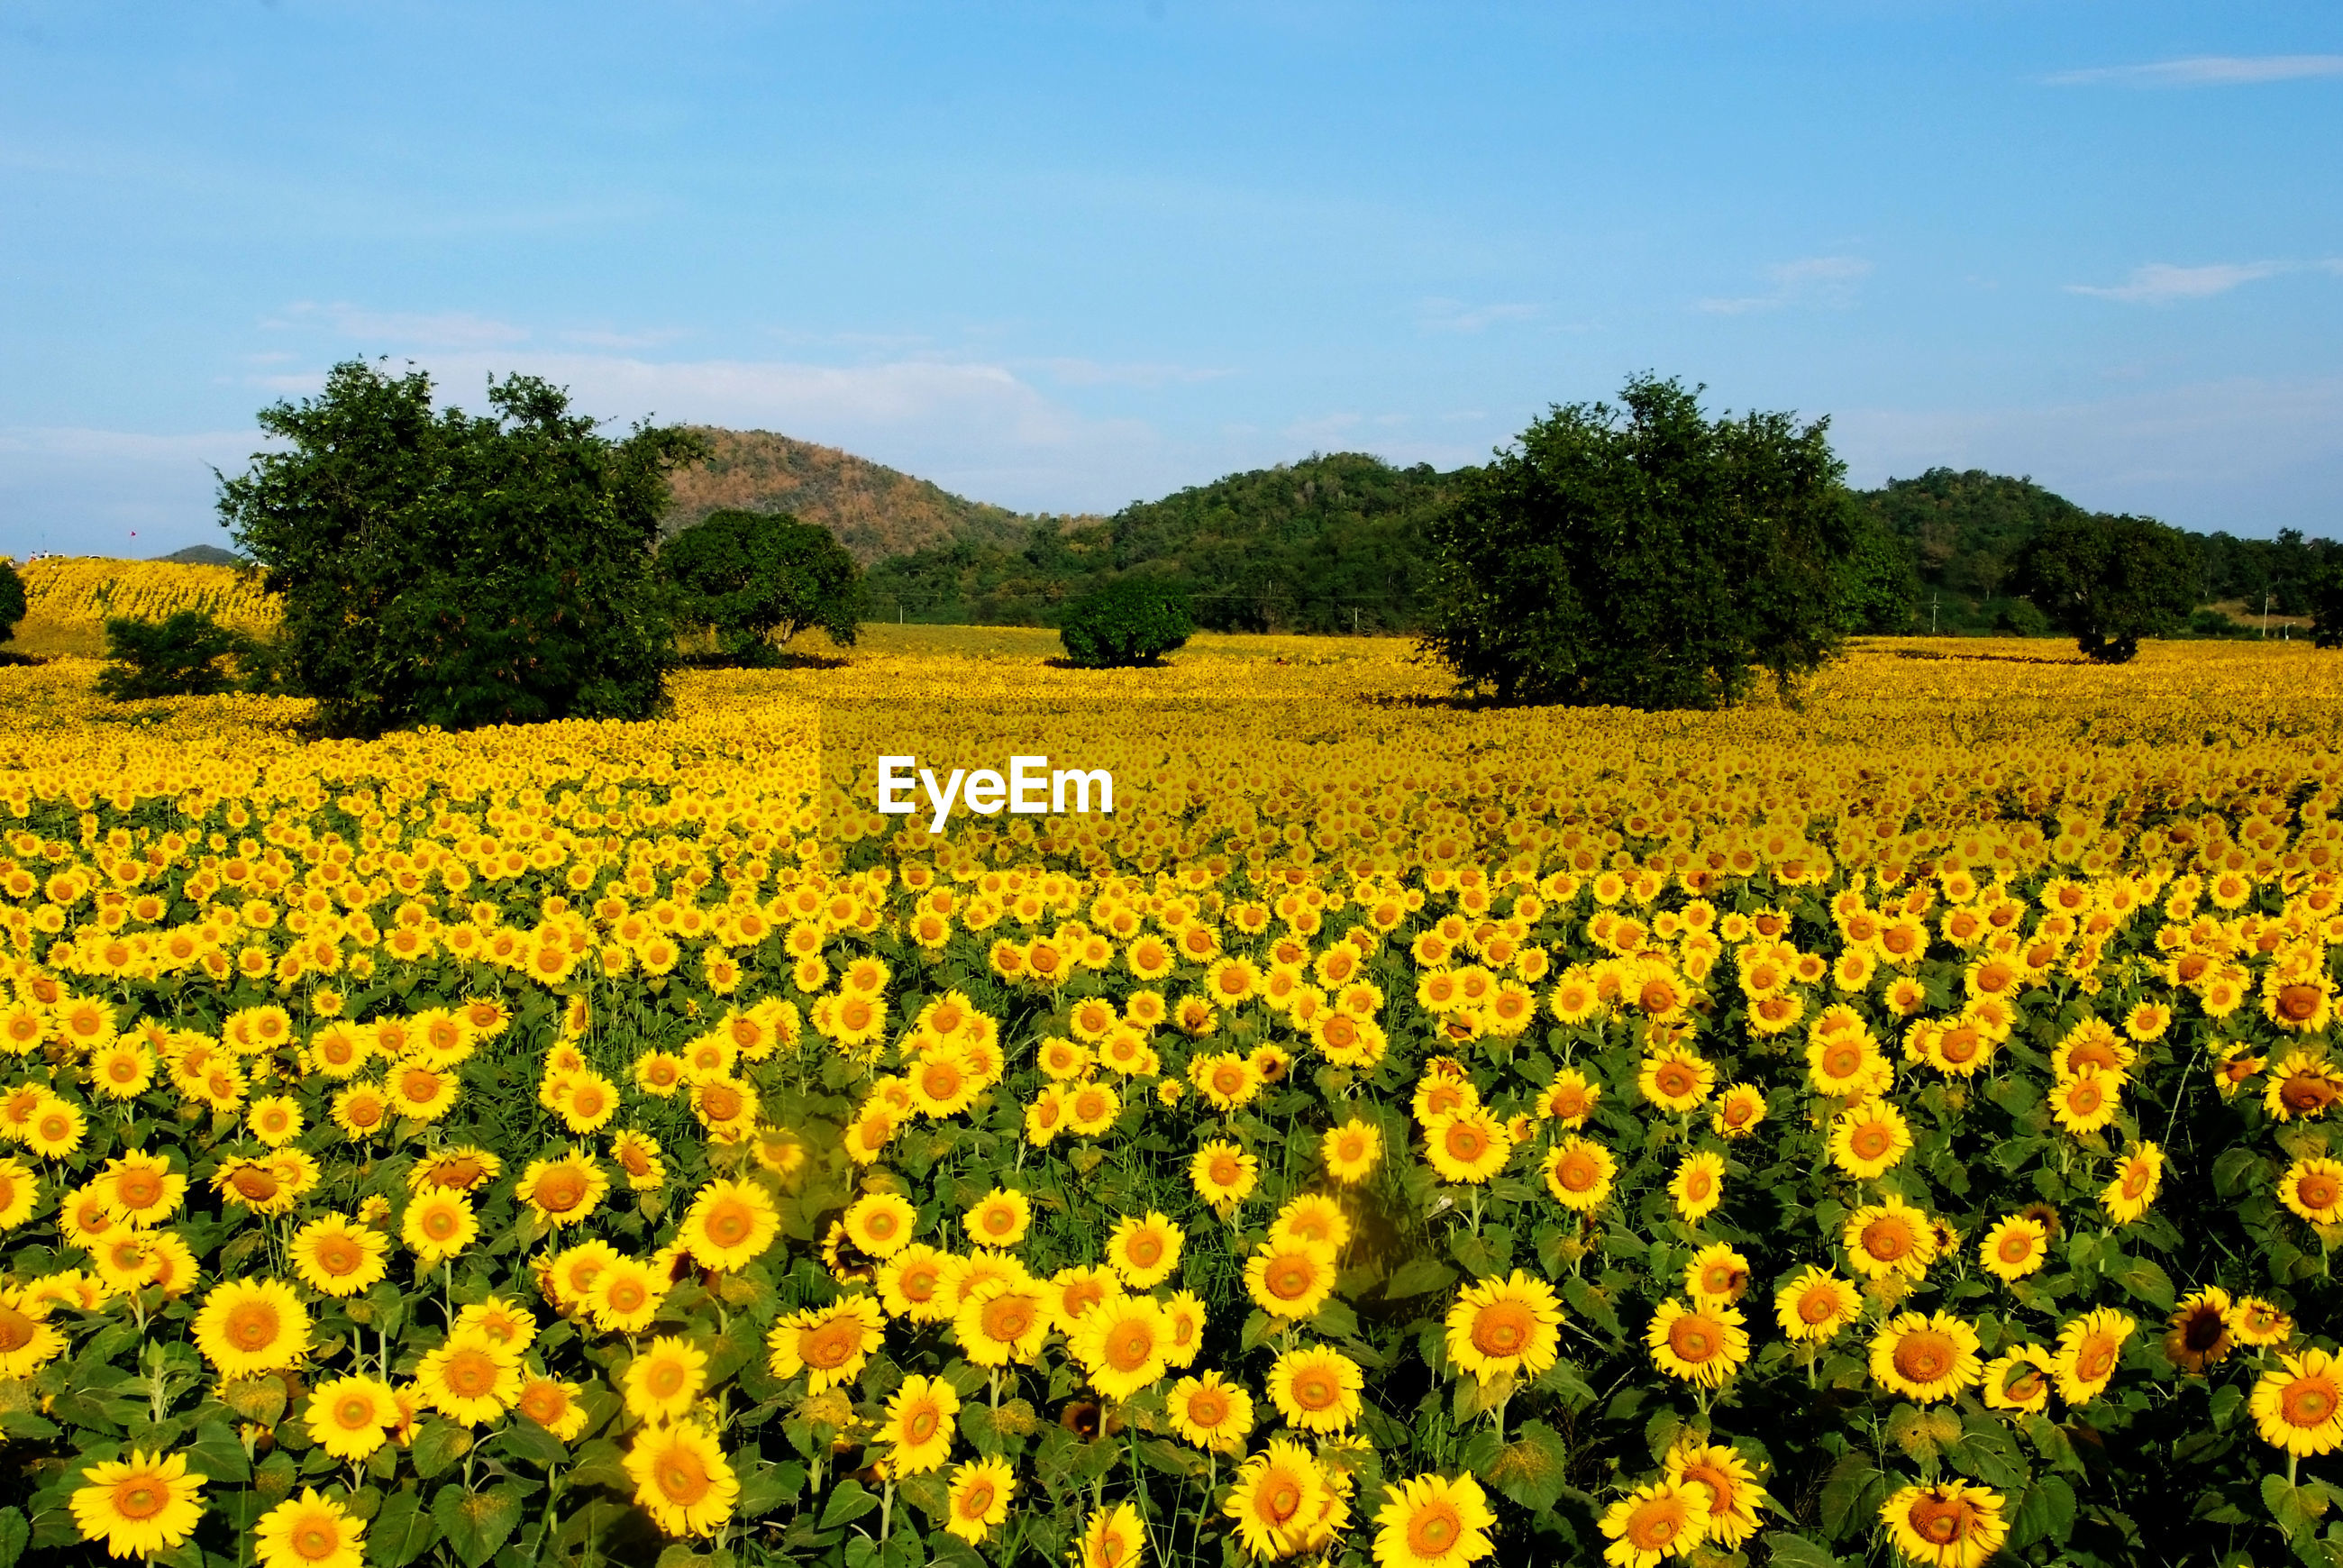 SCENIC VIEW OF FLOWERING FIELD AGAINST YELLOW SKY